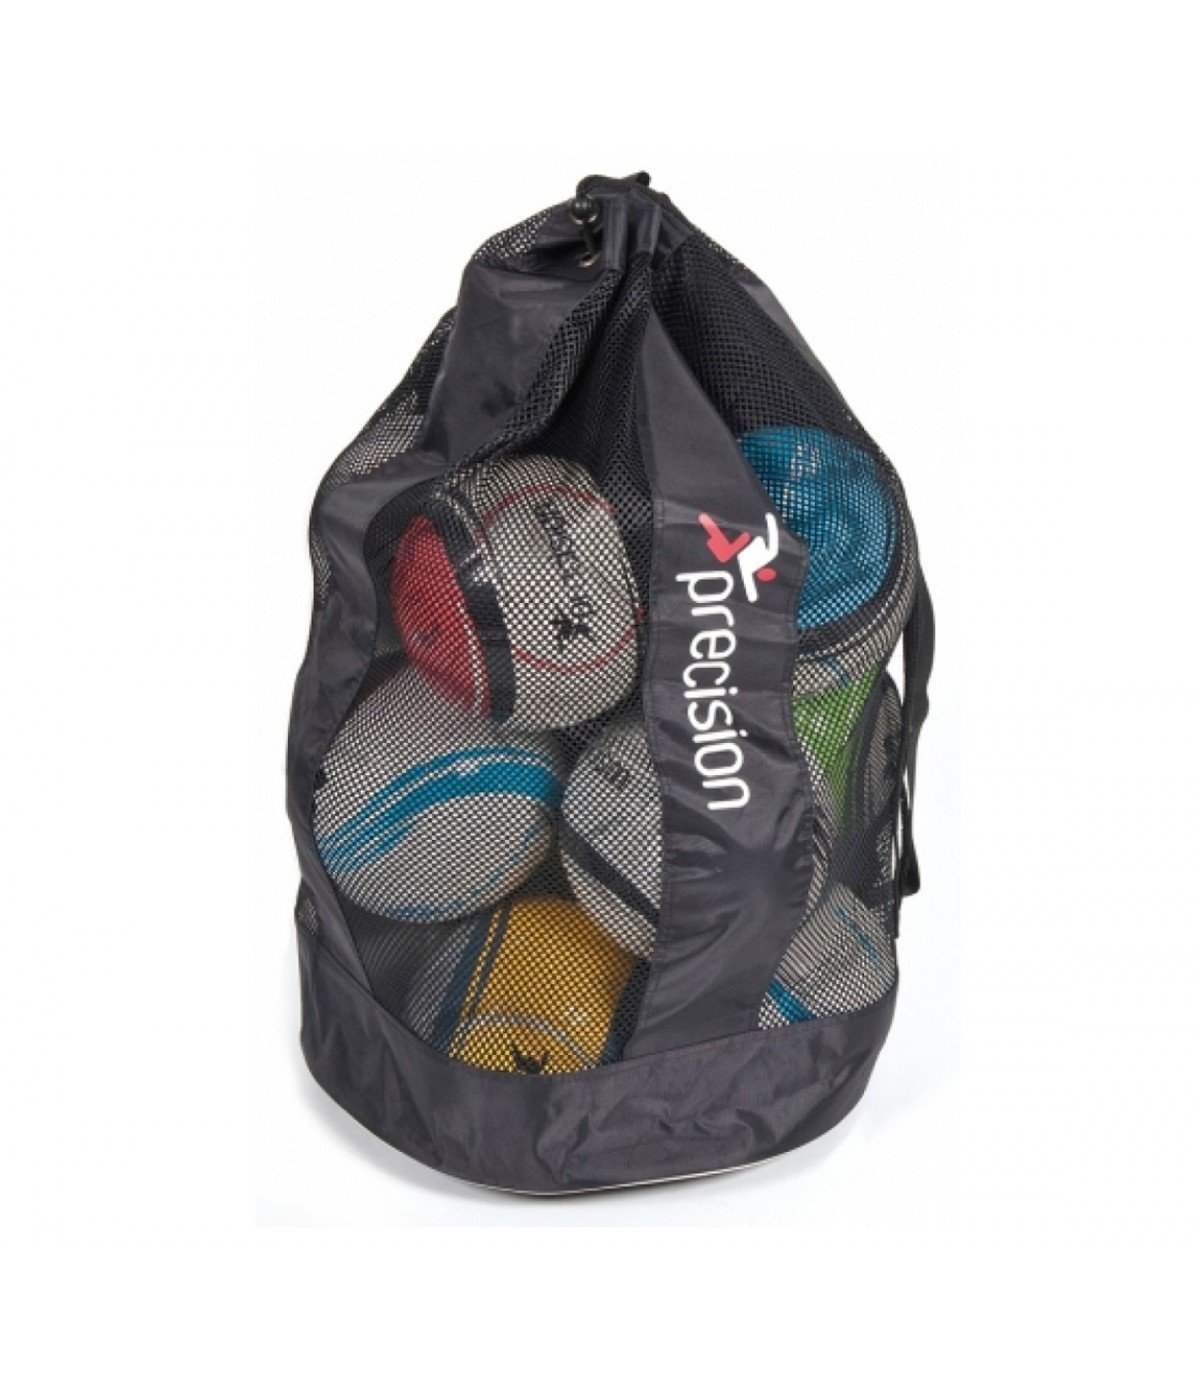 Precision Training 12 Ball Sack With Adjustable Shoulder Strap rrp£16